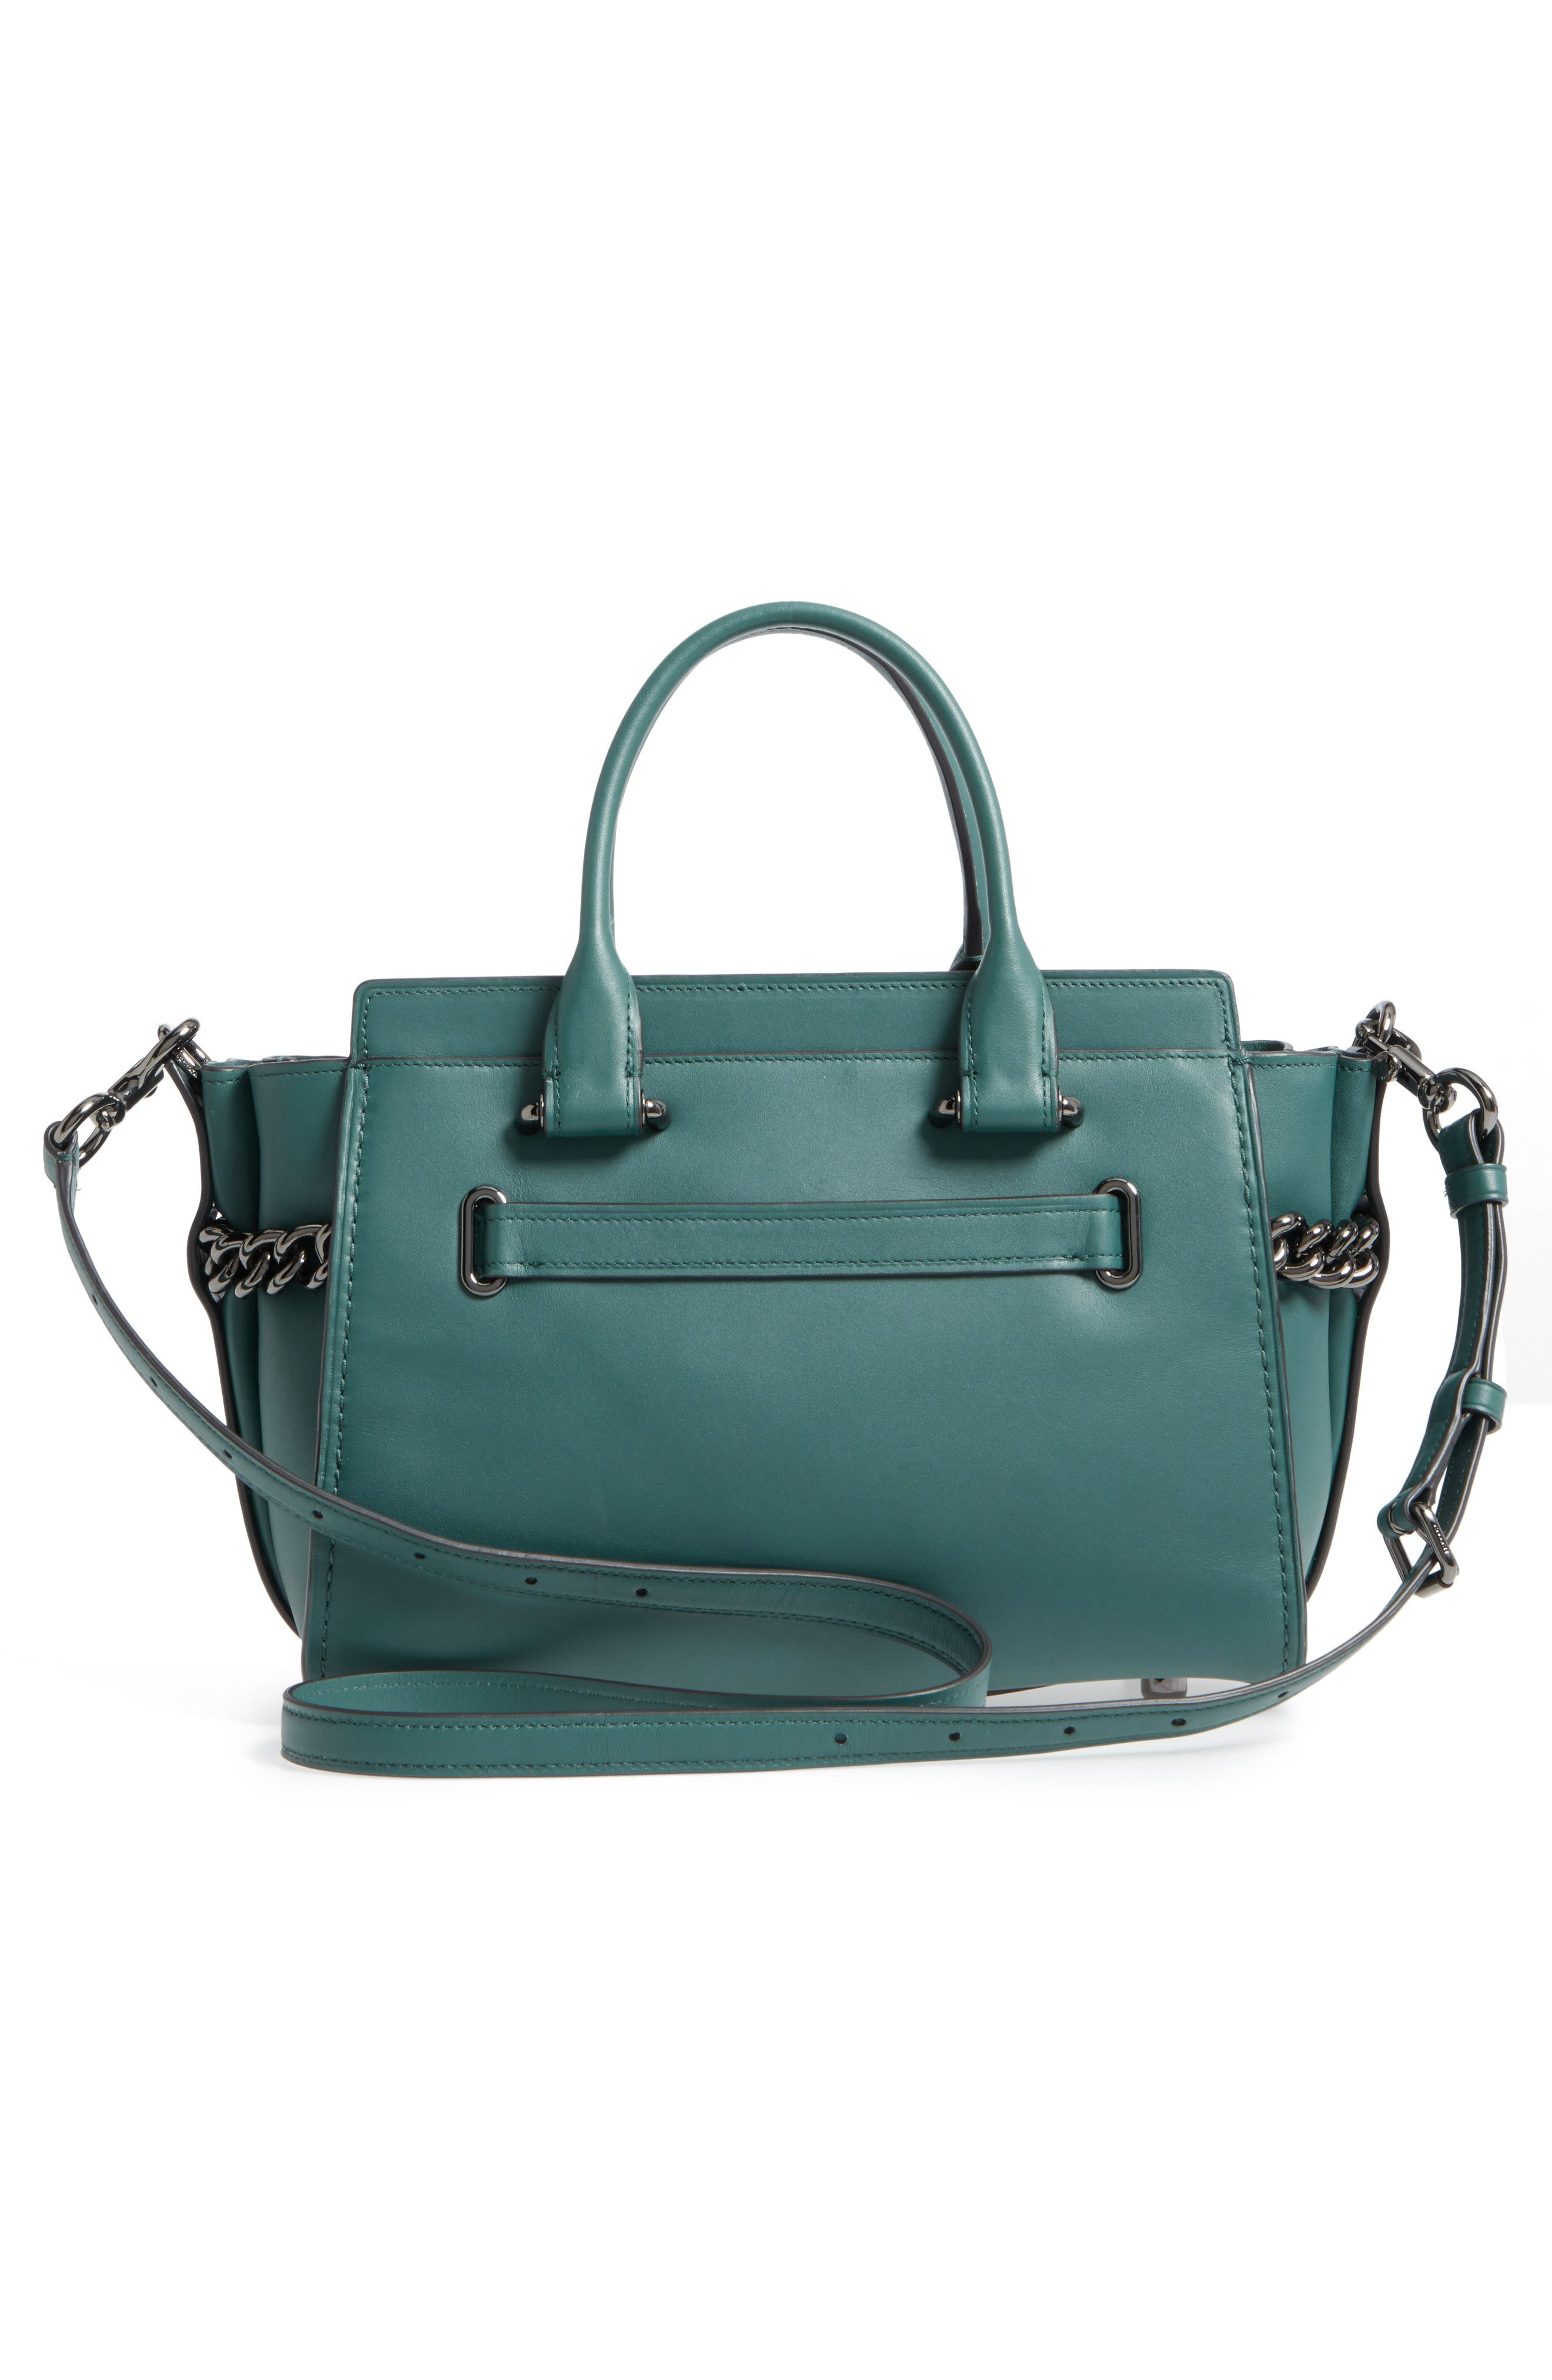 ID Bracelet Swagger 27 Calfskin Leather Satchel,                             Alternate thumbnail 2, color,                             Dark Turquoise